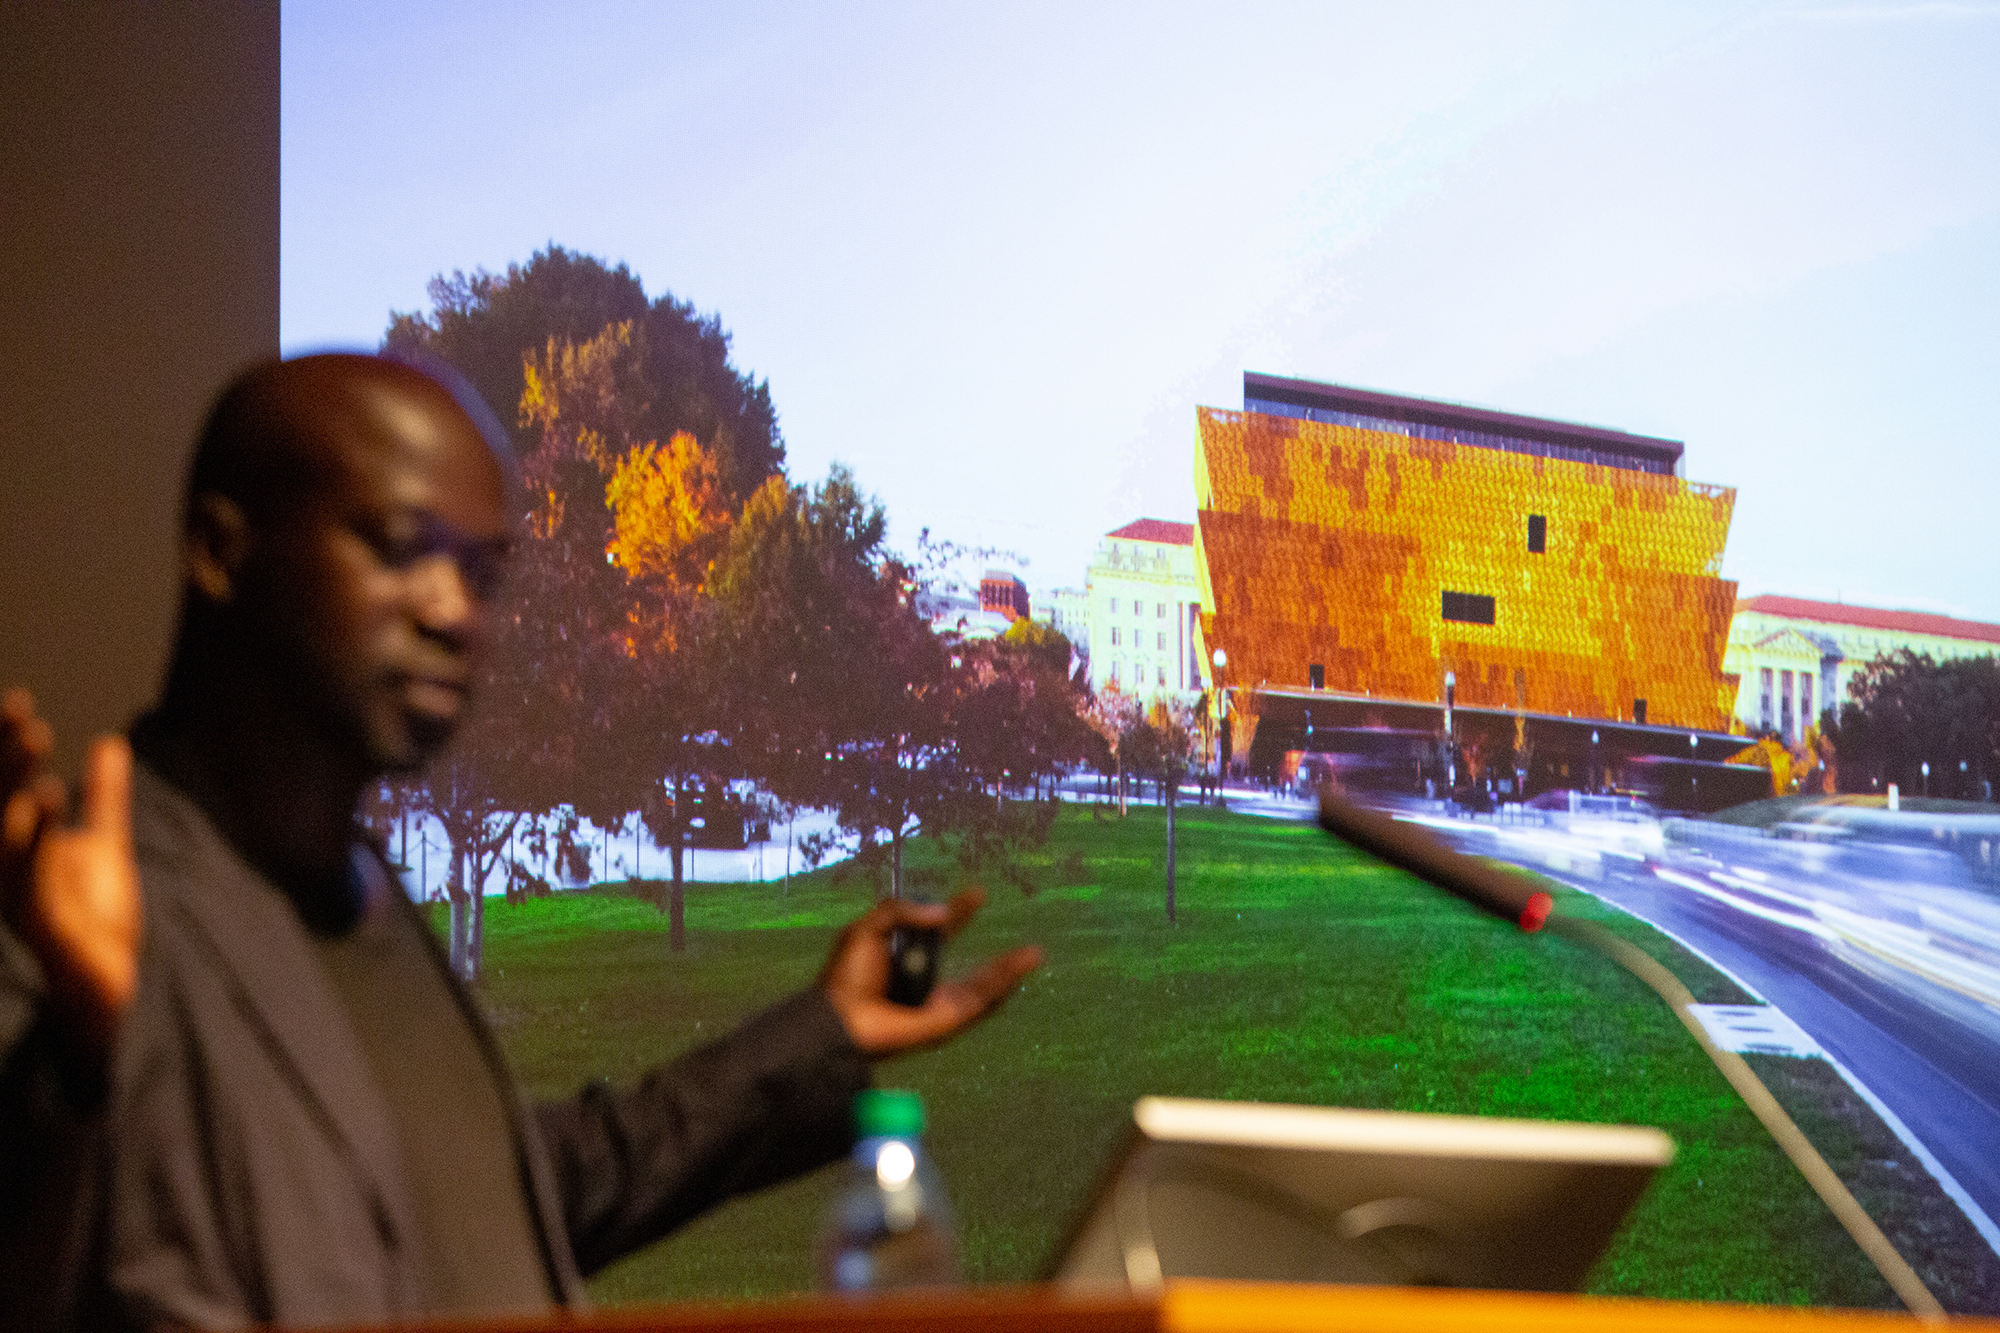 David Adjaye in front of a photo of the National Museum of African American History and Culture.